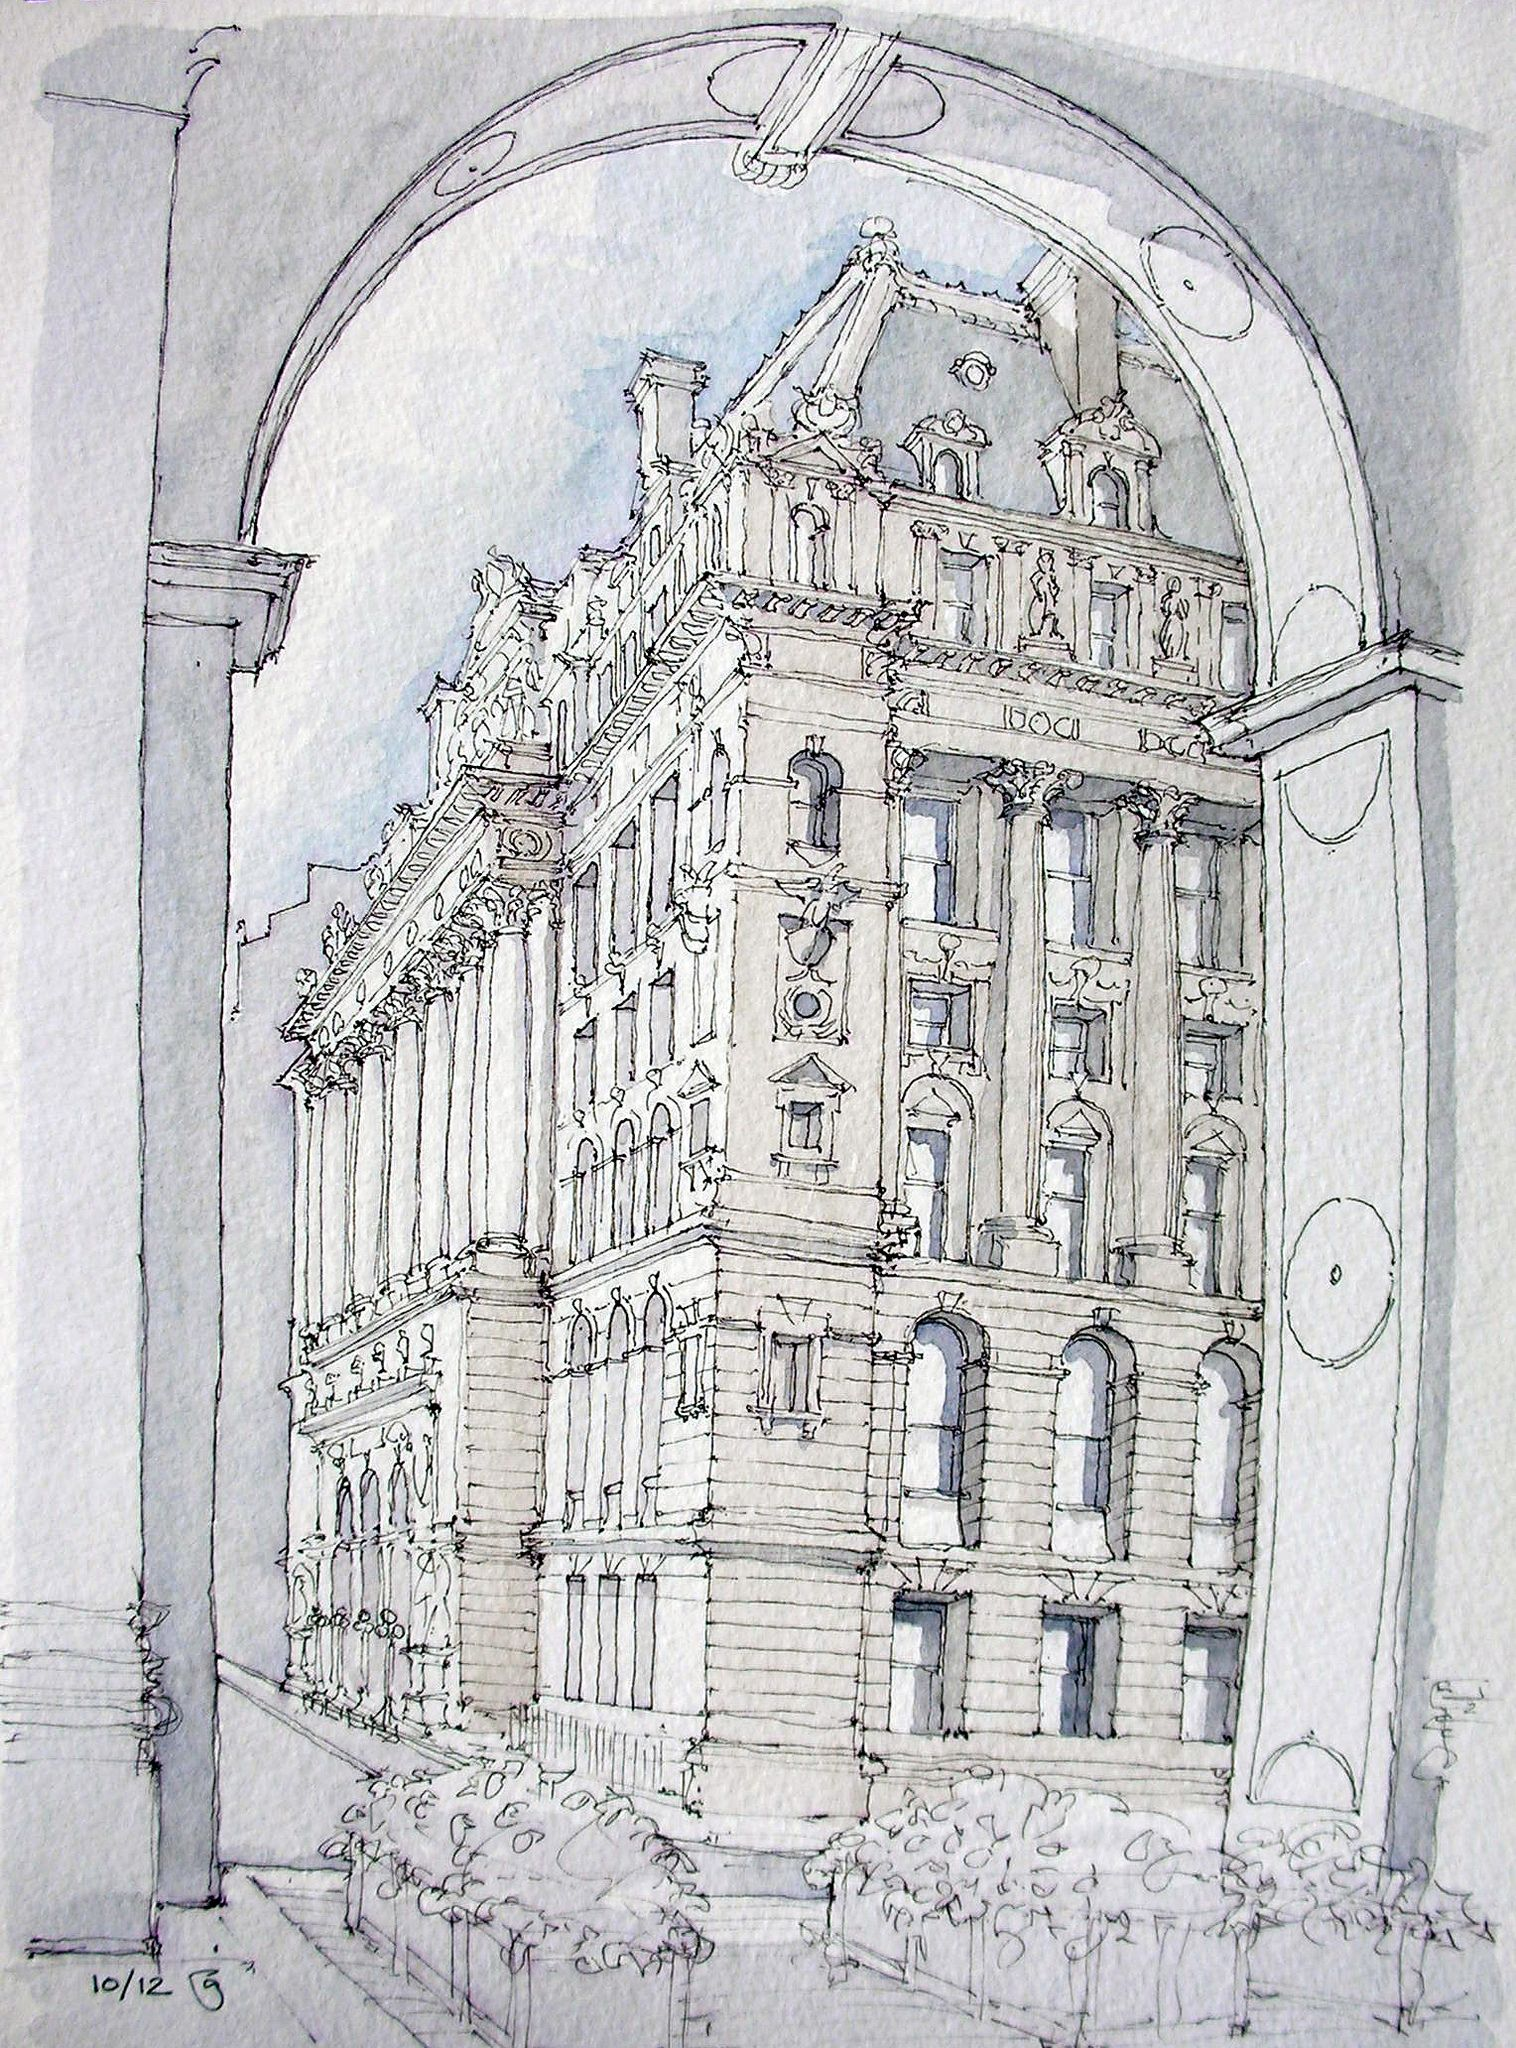 Surrogate Court Building Drawings, Watercolor